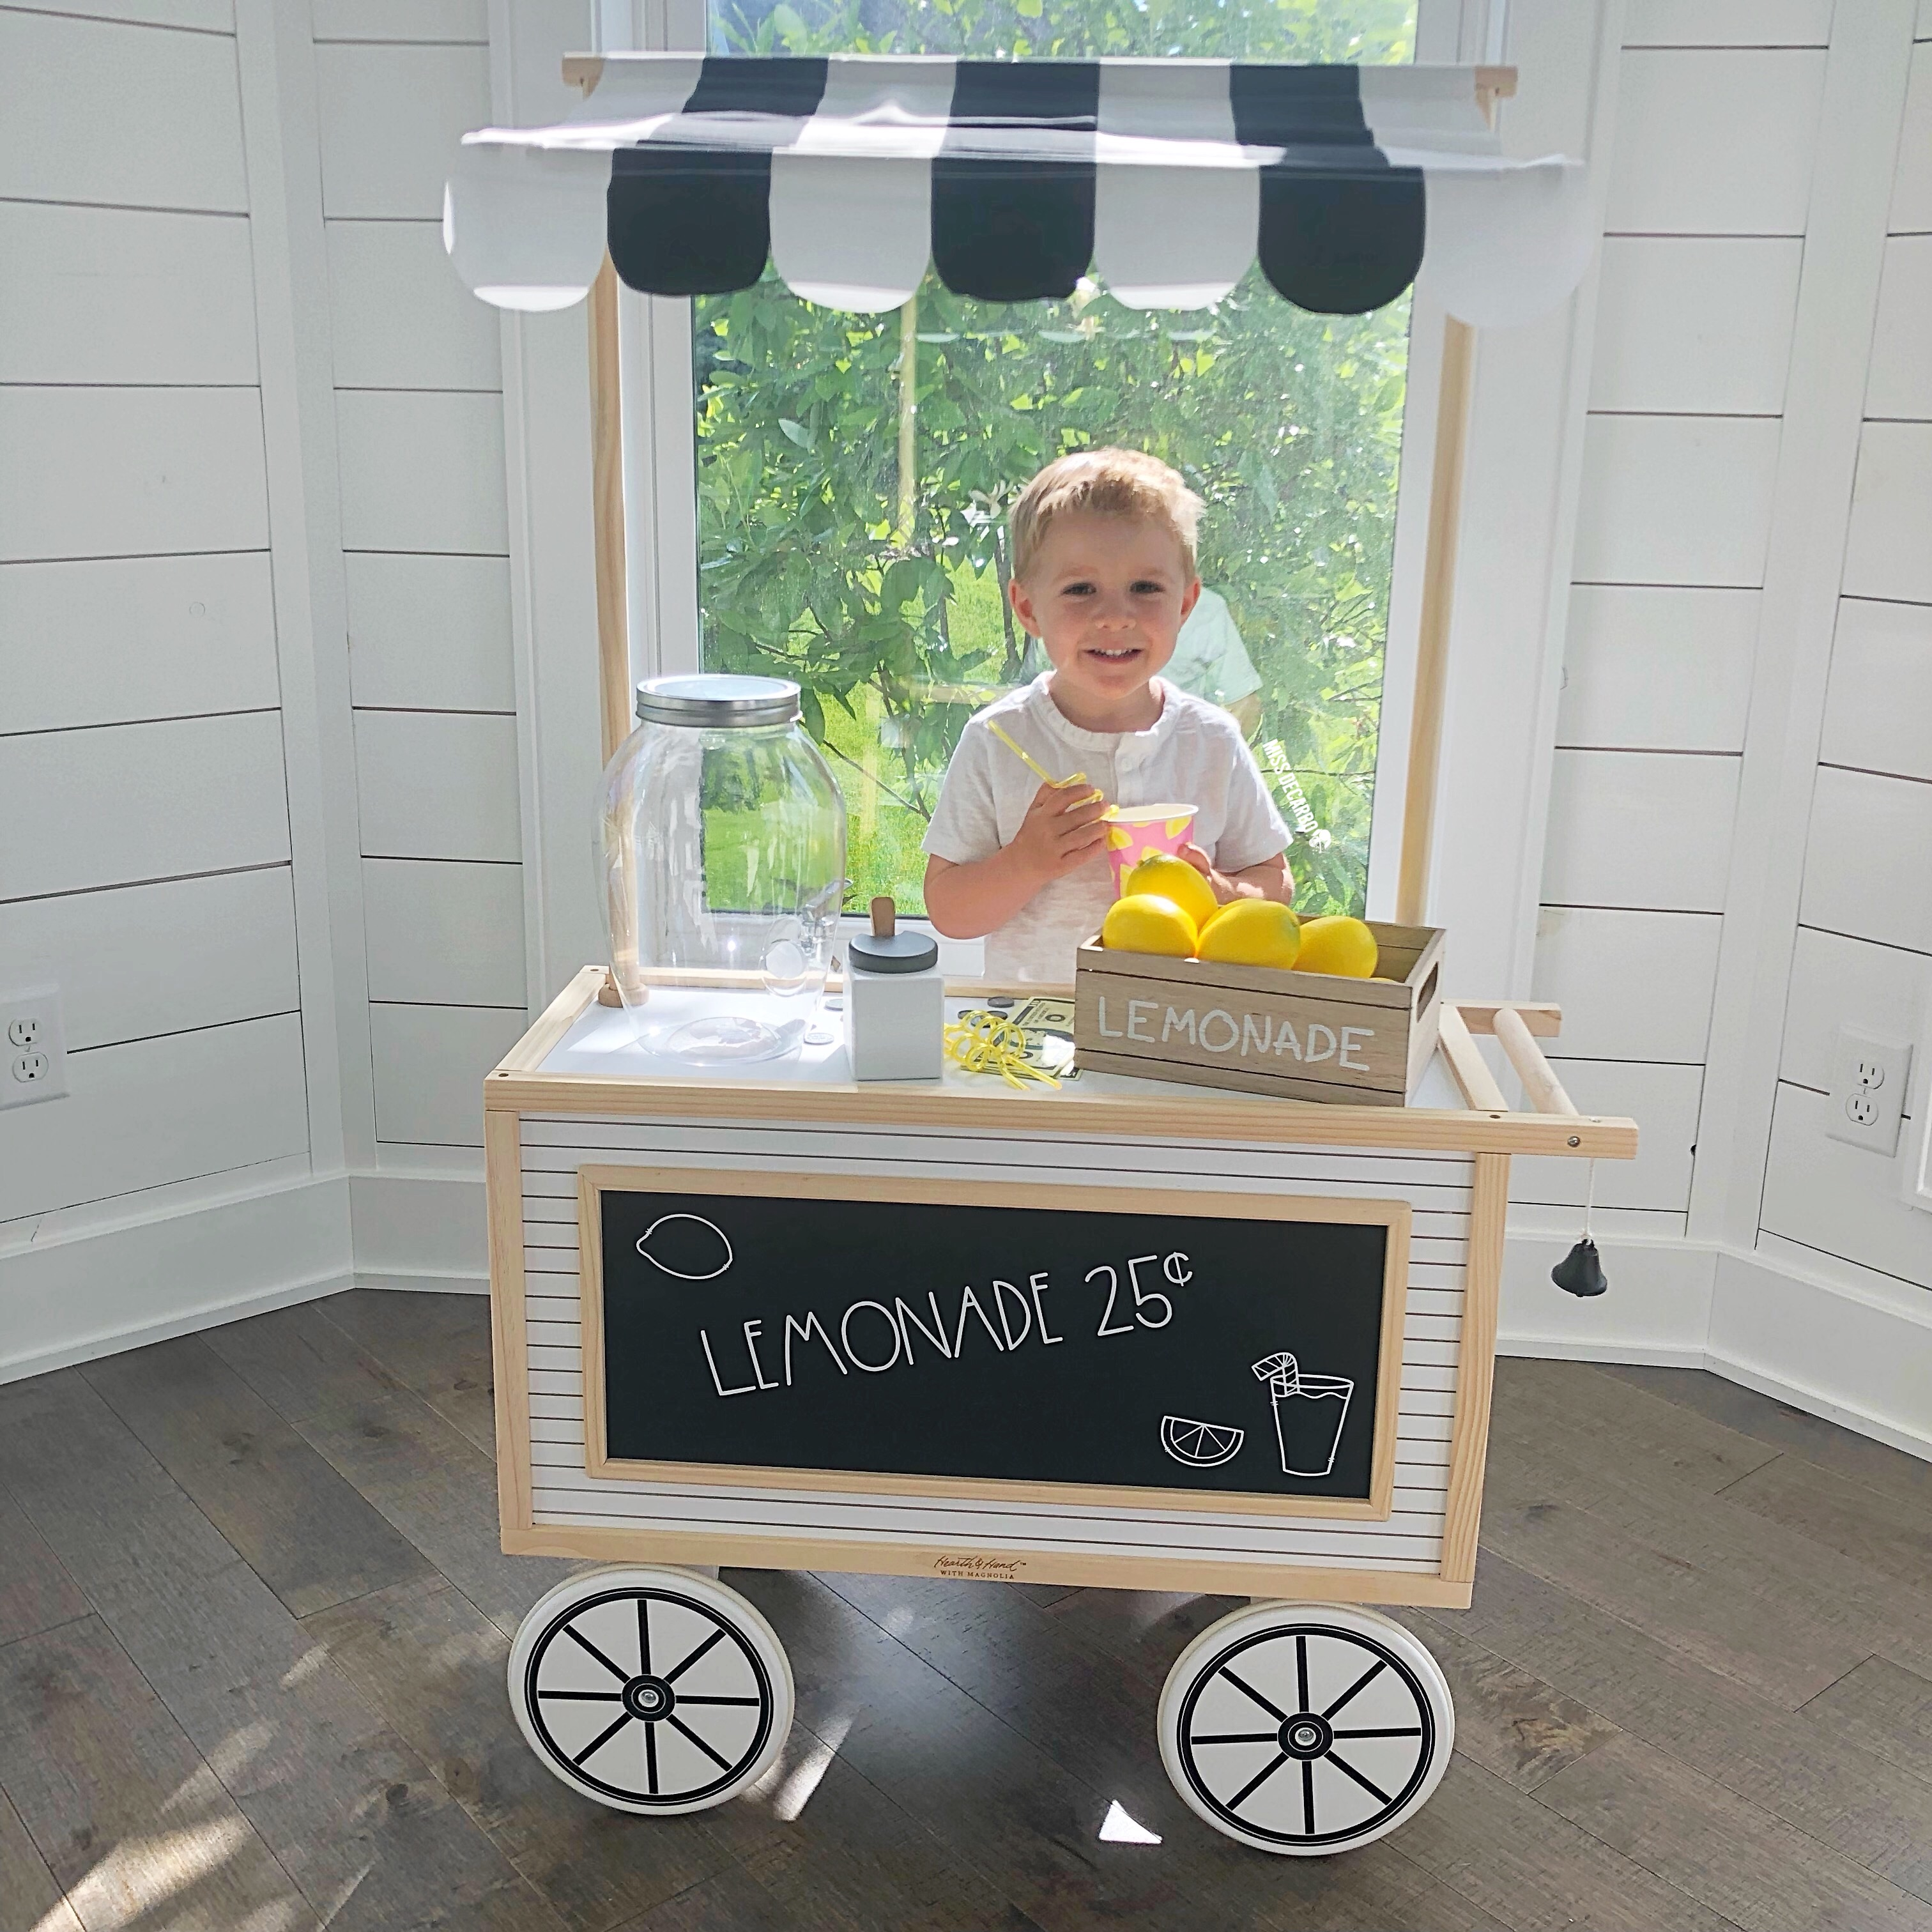 A modern farmhouse play cart that was transformed into a lemonade stand. This adorable dramatic play cart is perfect for fostering pretend-play and imagination!